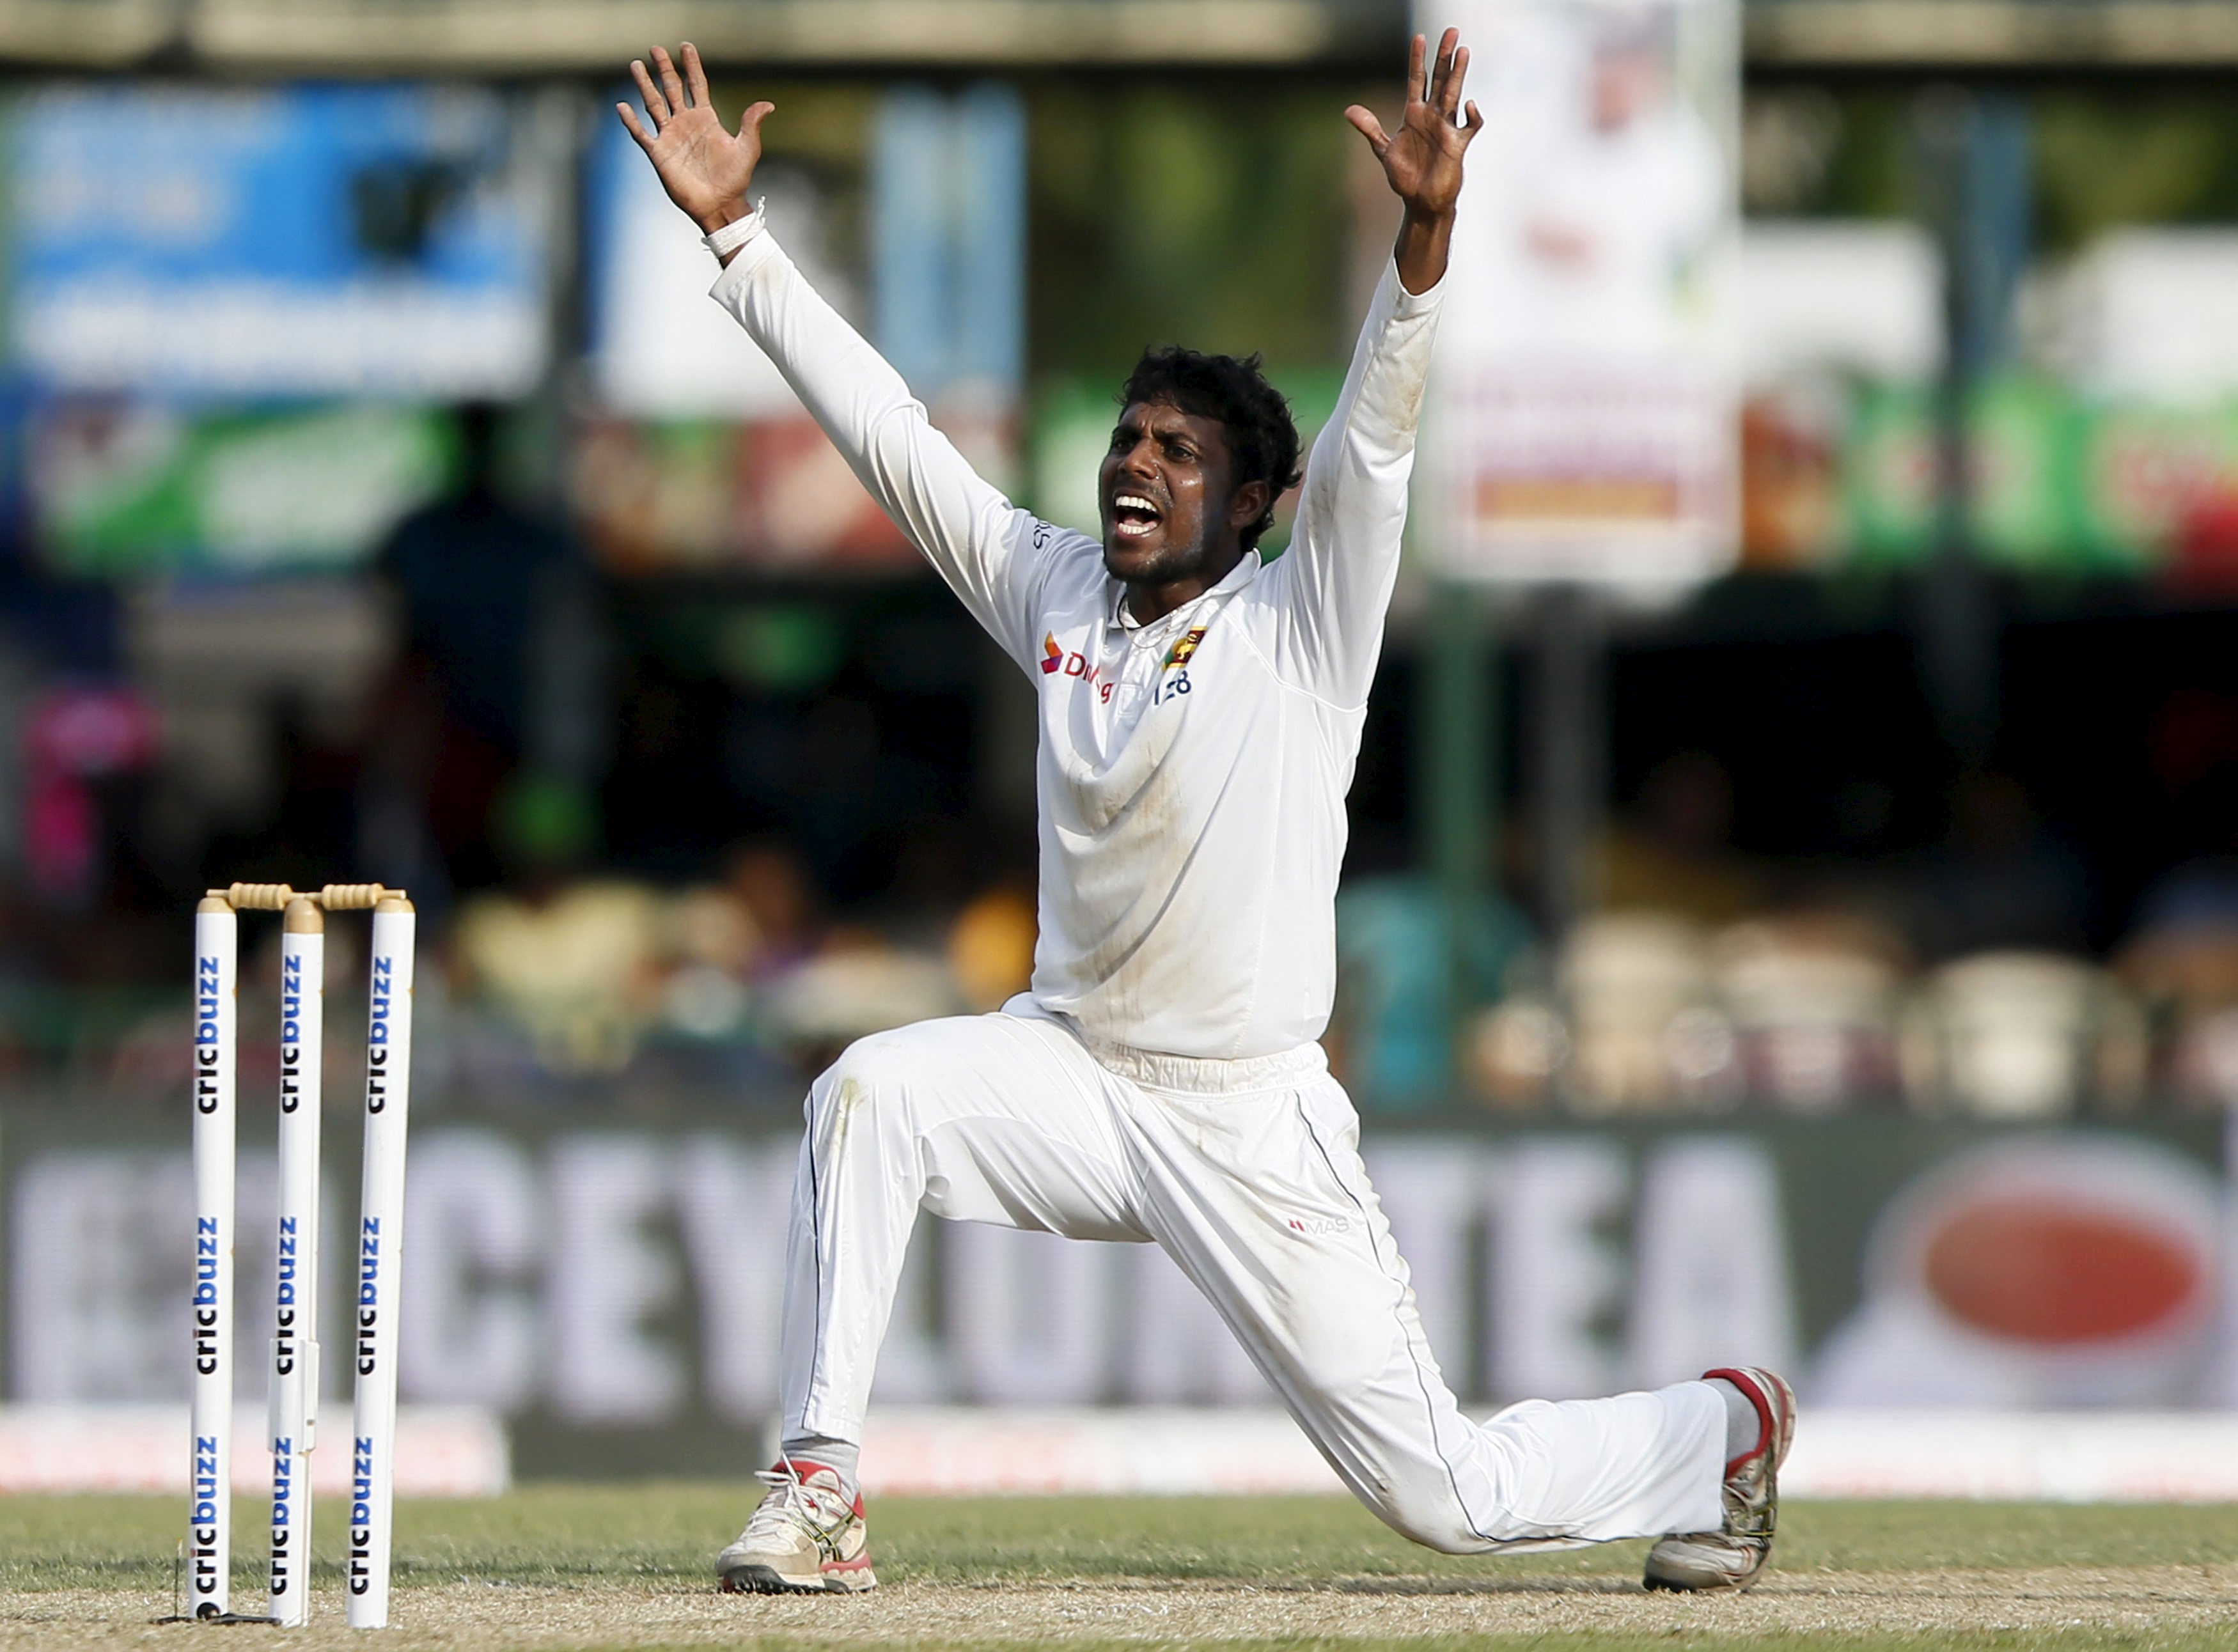 Sri Lanka's Tharindu Kaushal appeals for an unsuccessful wicket for India's Rohi